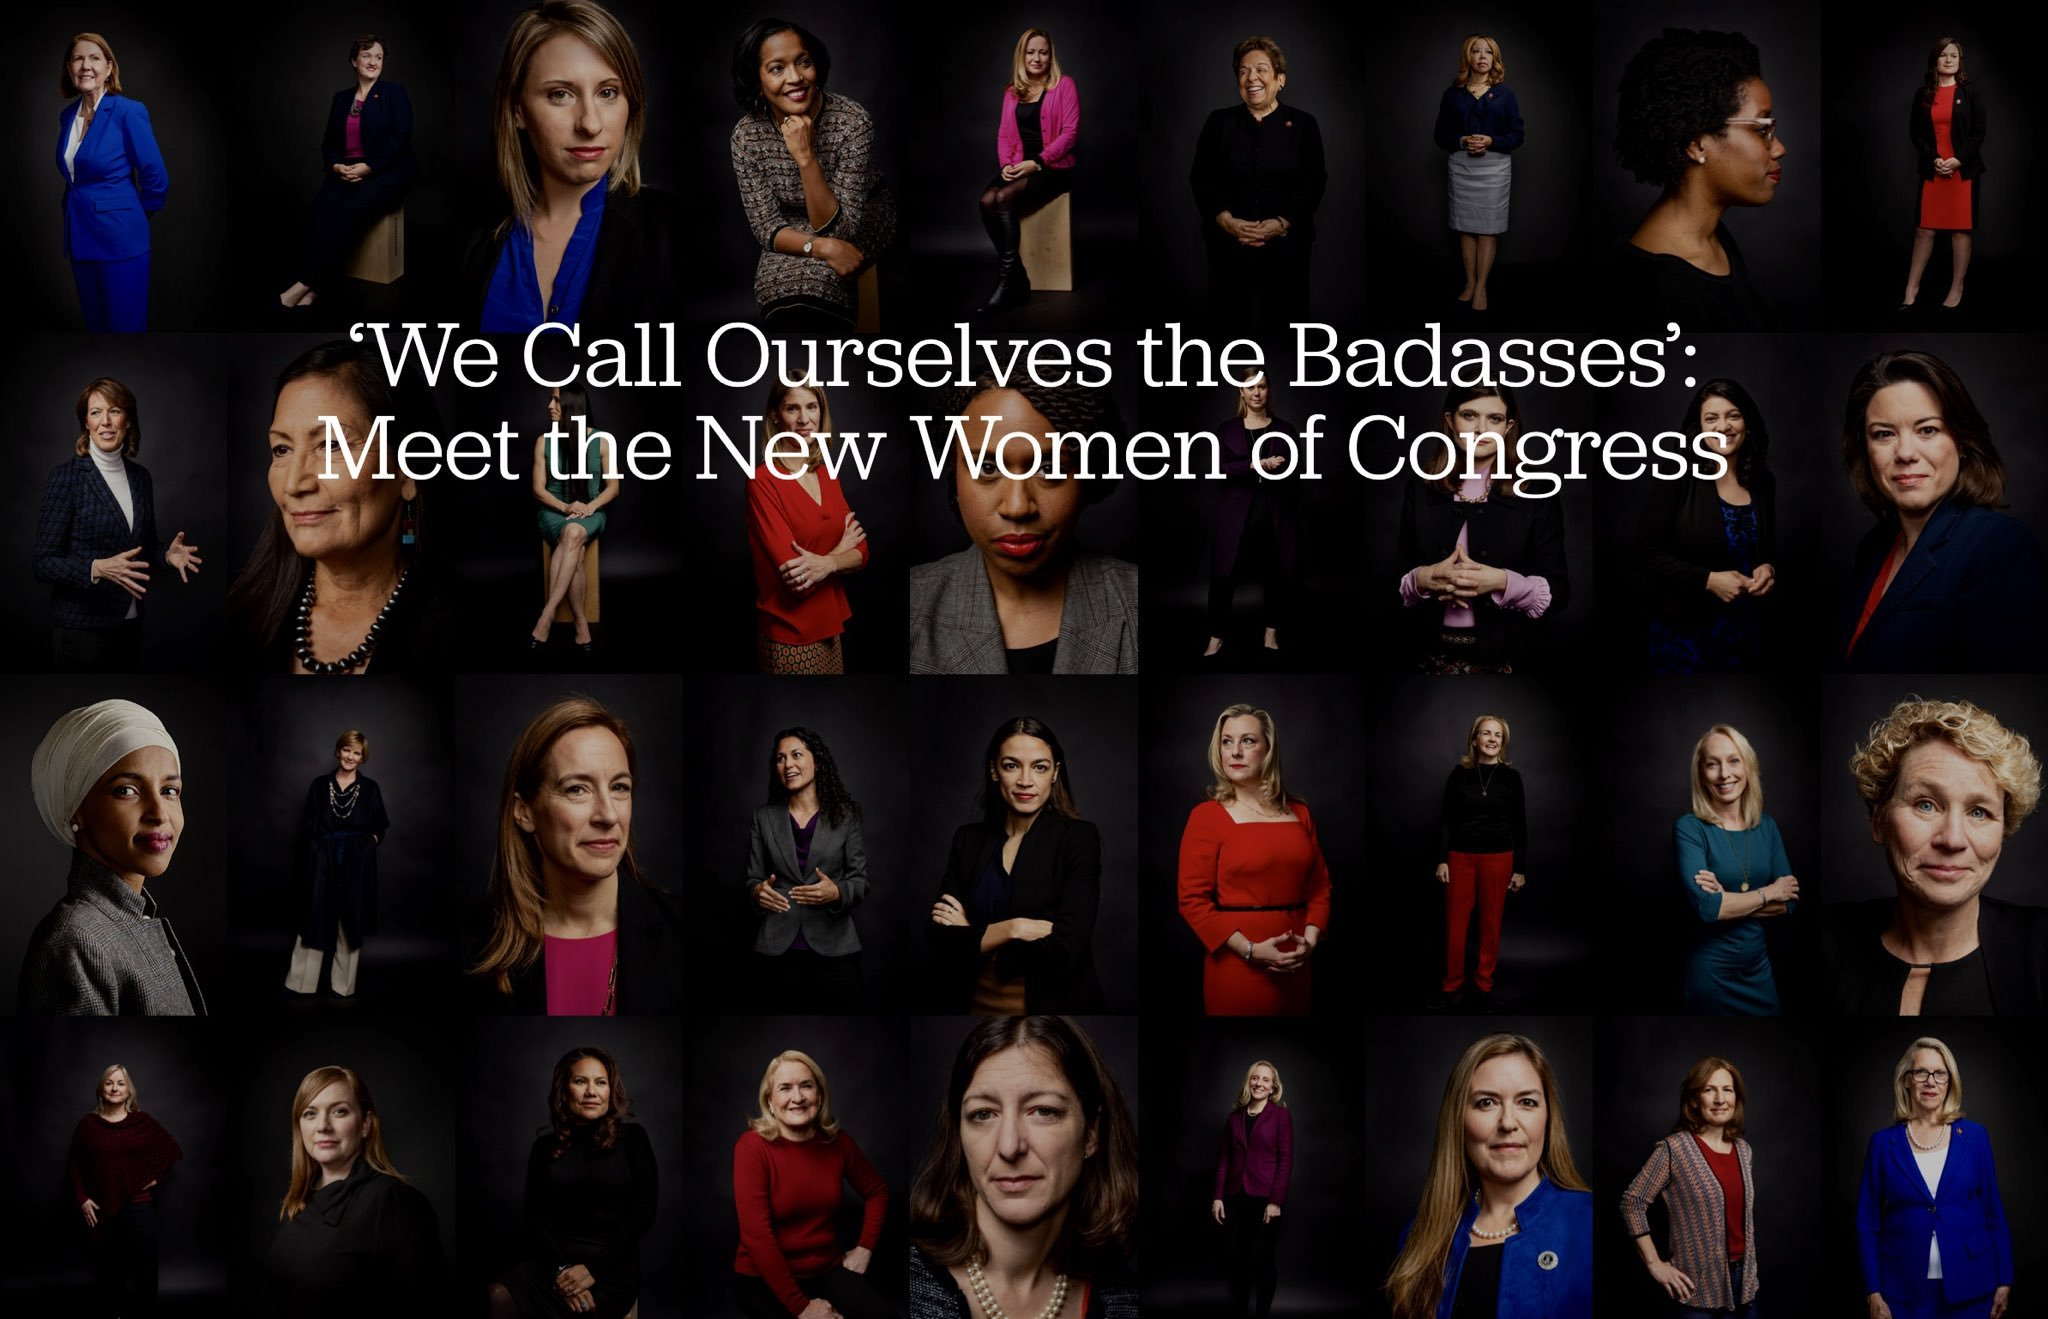 Original badass women of congress 01